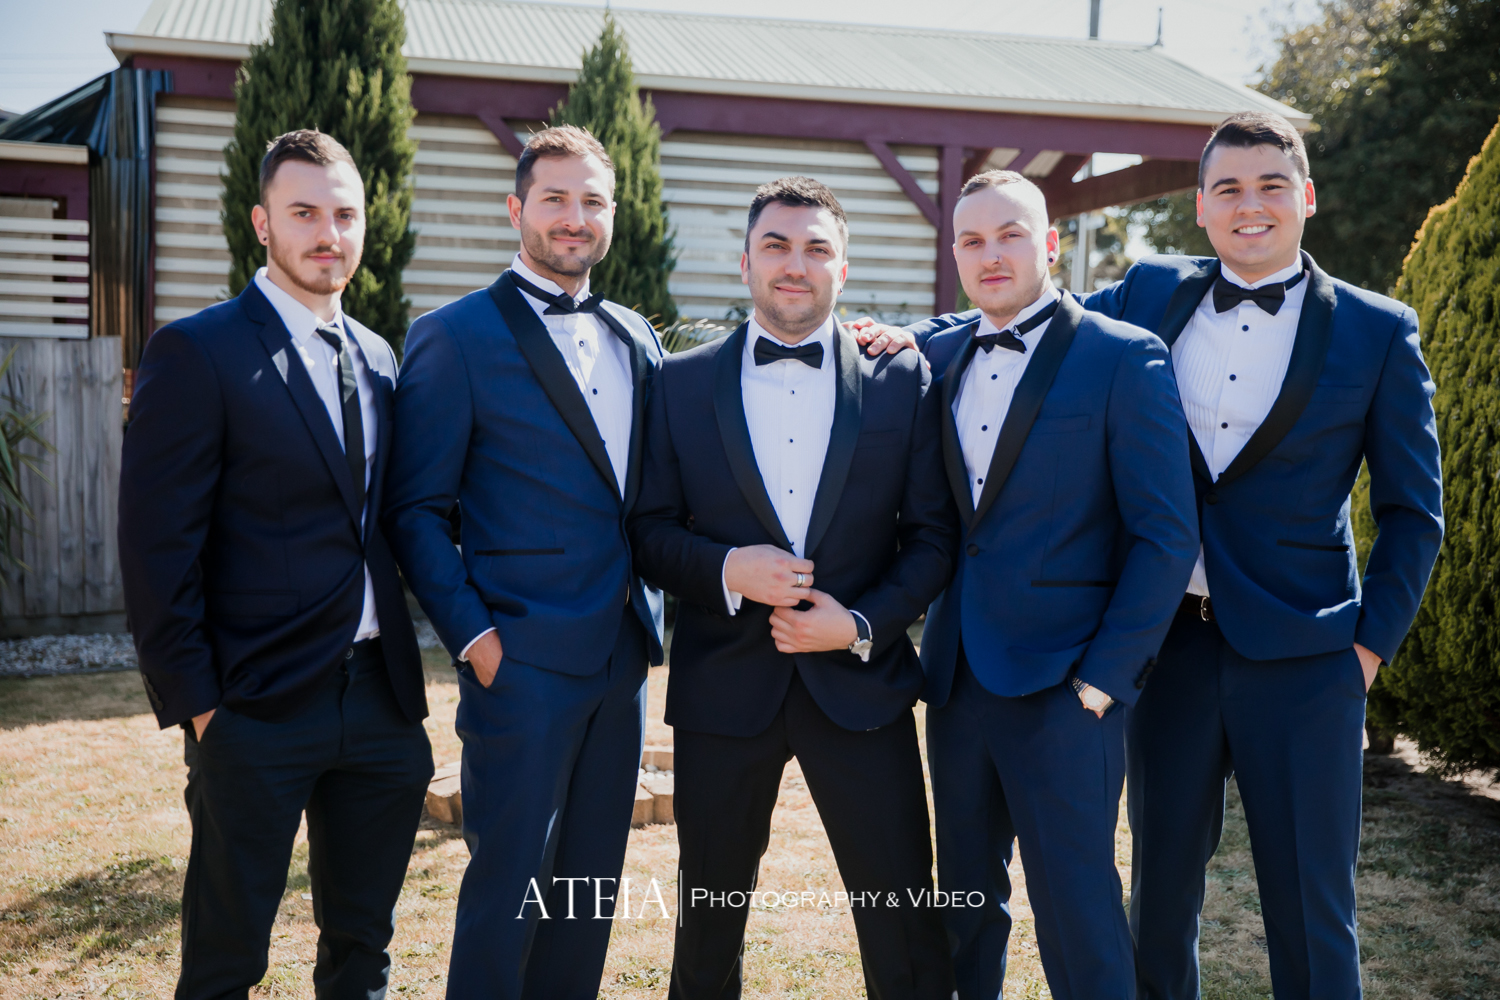 , Vogue Ballroom Wedding Photography Melbourne by ATEIA Photography & Video